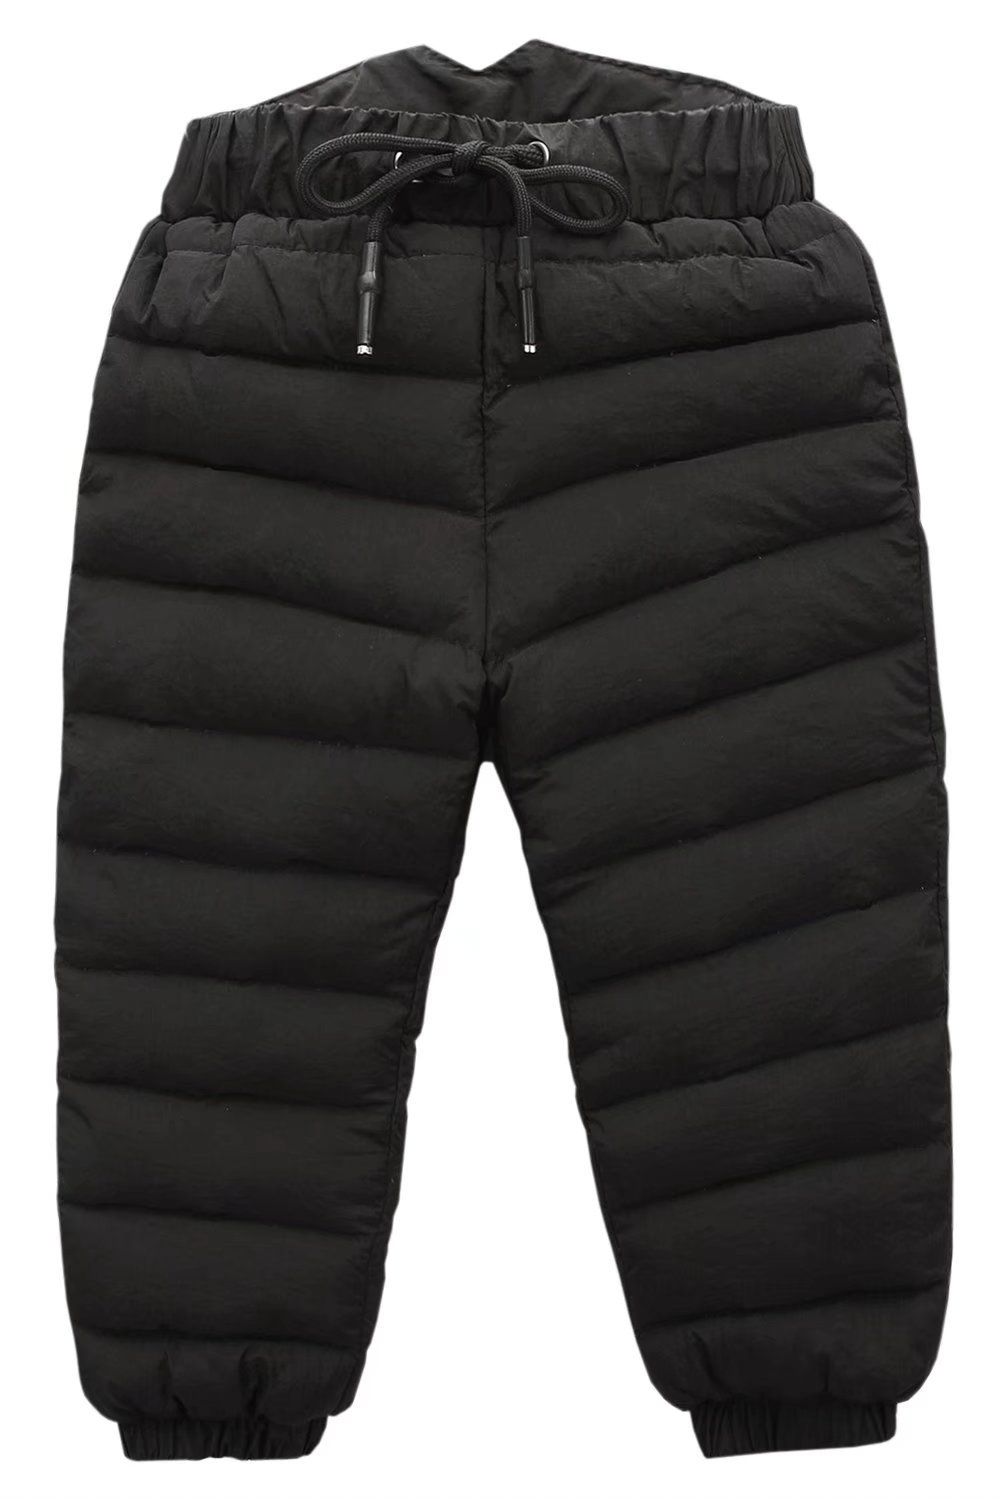 Boys Girls Winter Puffer Packable Down Snow Pants Black, 5-6 Years(5T-6T) =Tag 130